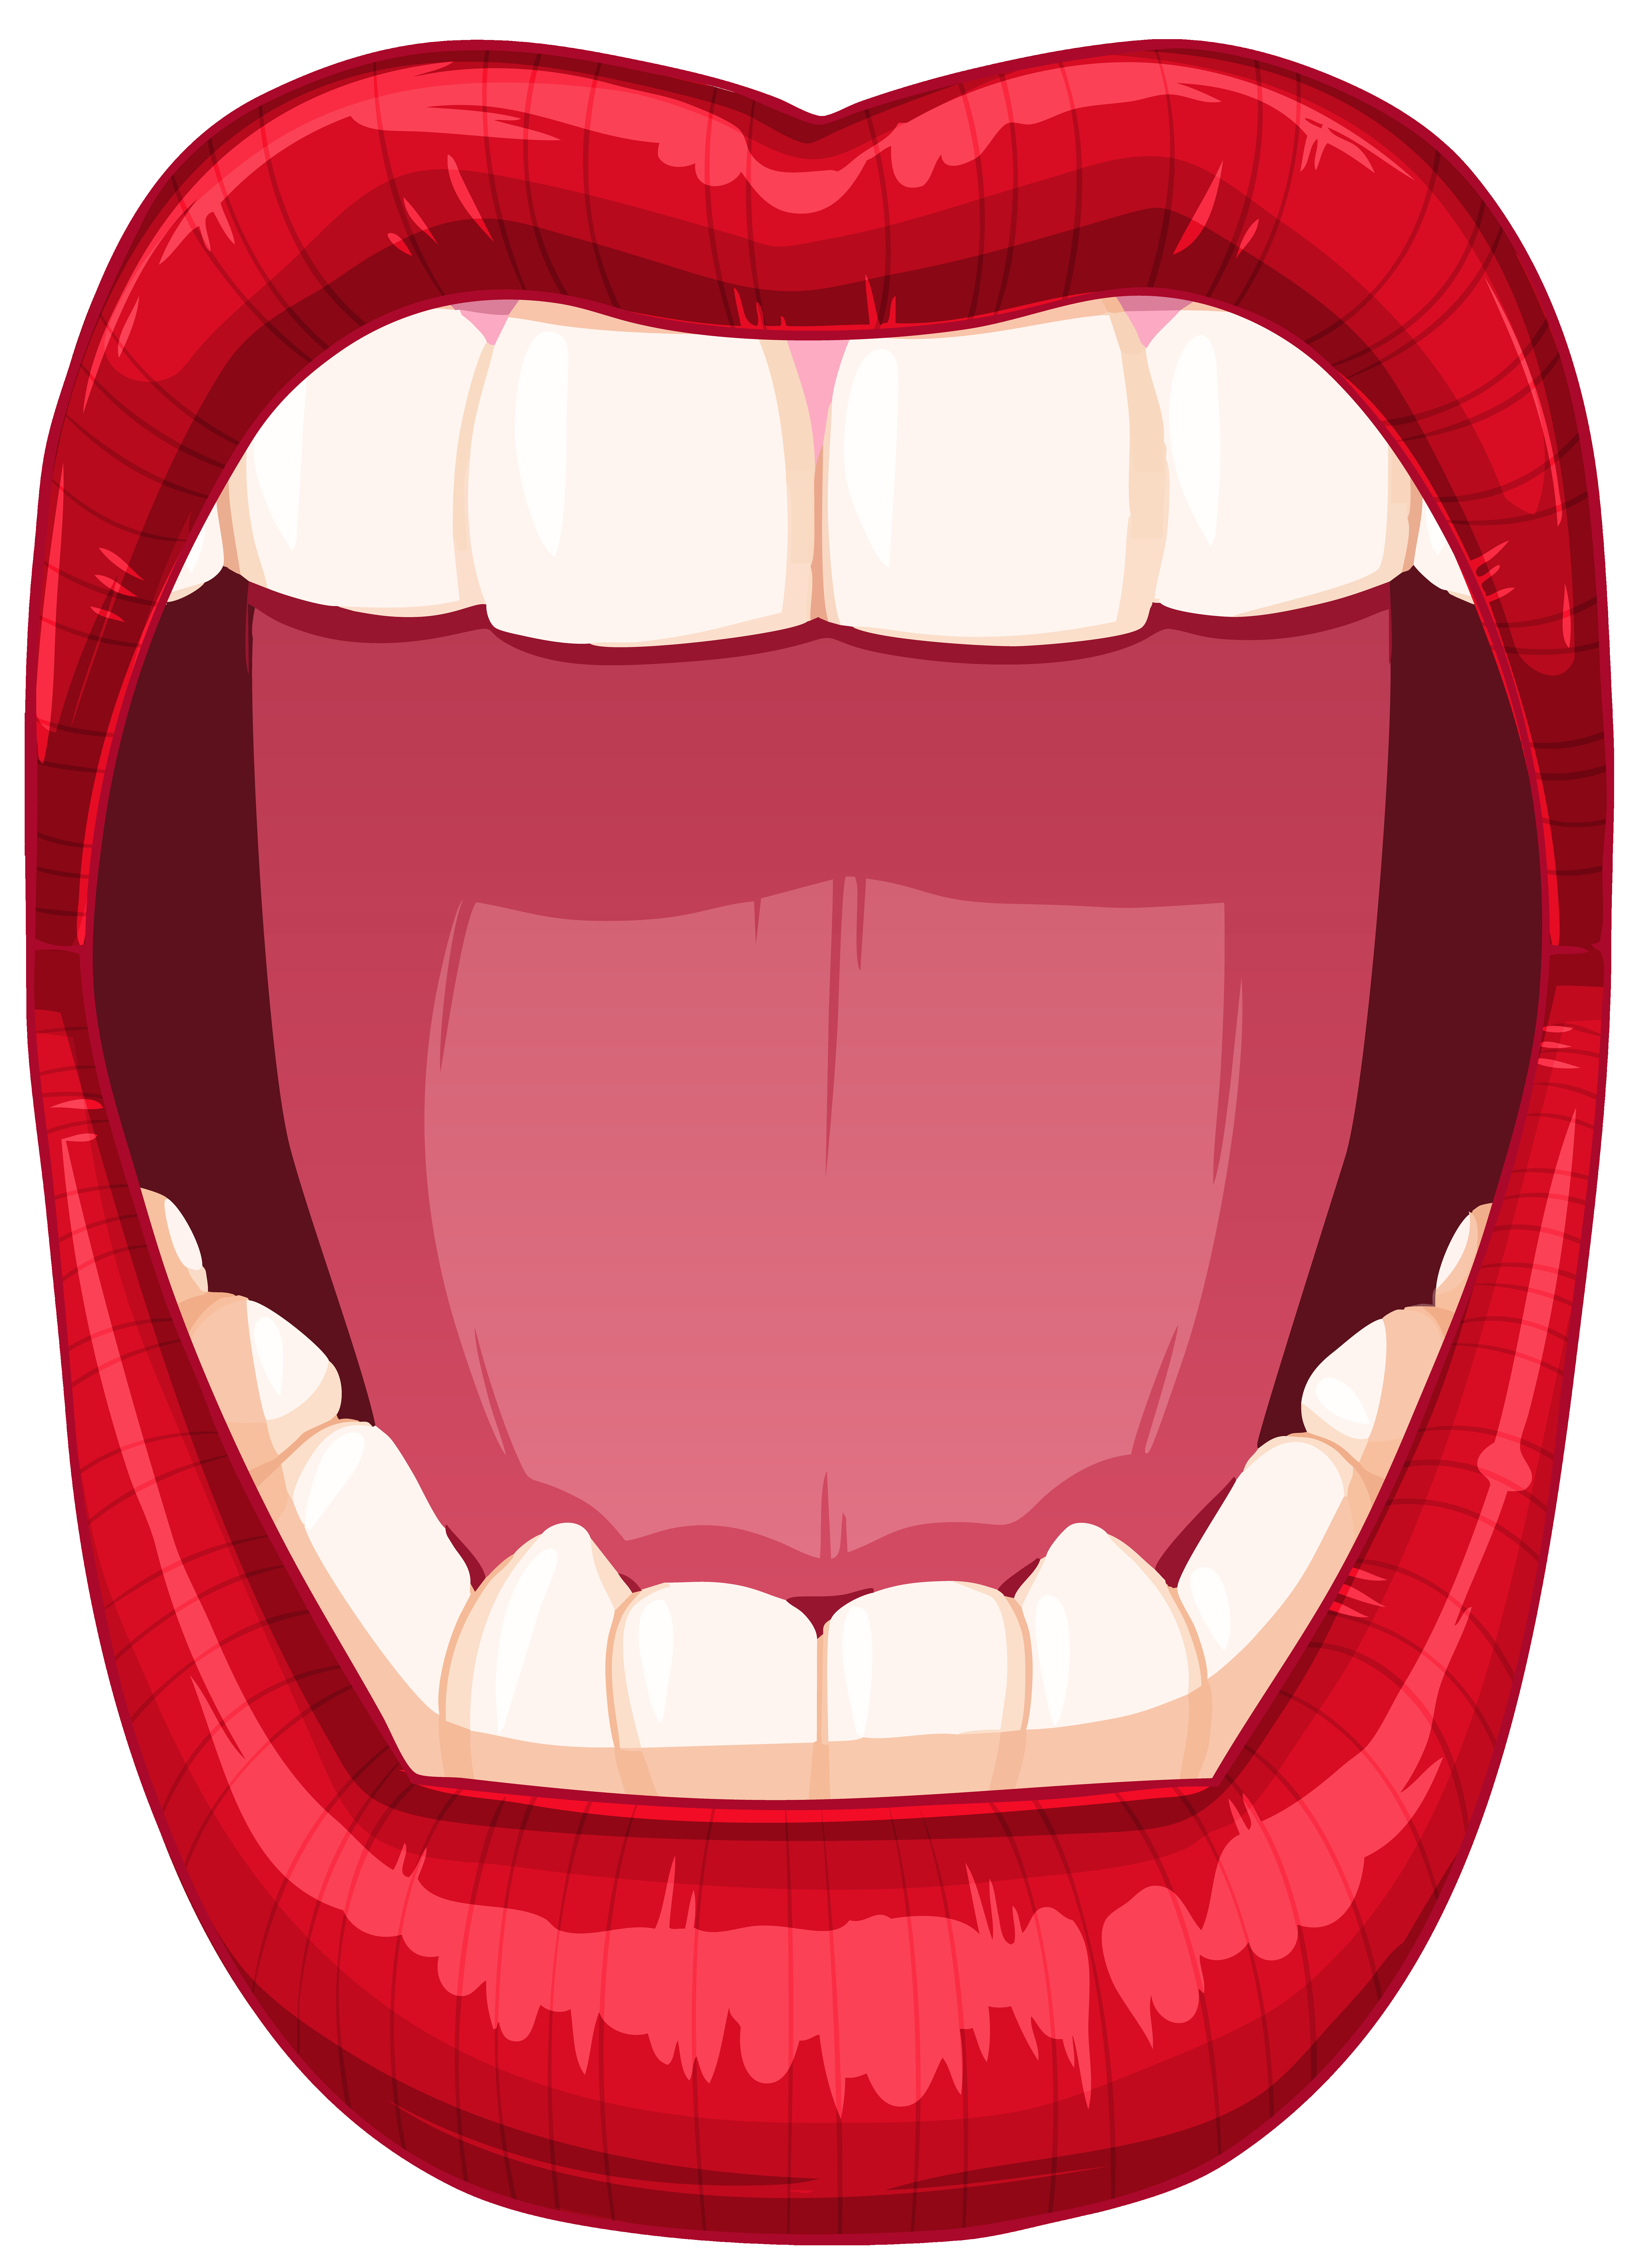 open mouth clipart at getdrawings com free for personal use open rh getdrawings com Smiling Mouth Clip Art Picture Accessory Frown Mouth Clip Art